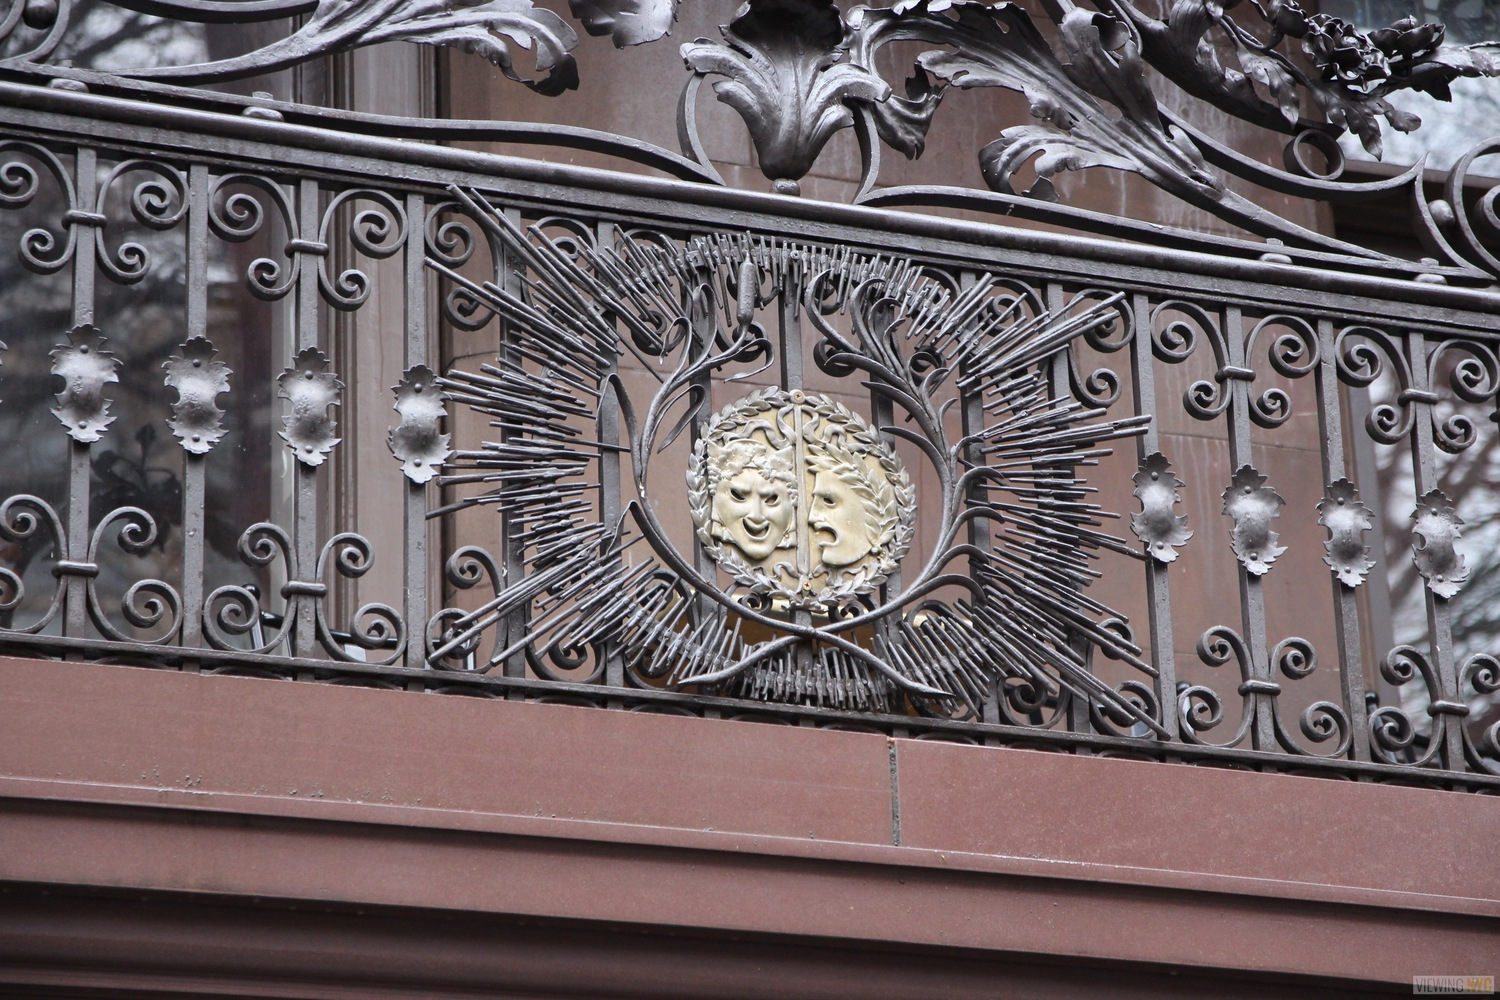 The Players Crest on Exterior Railing